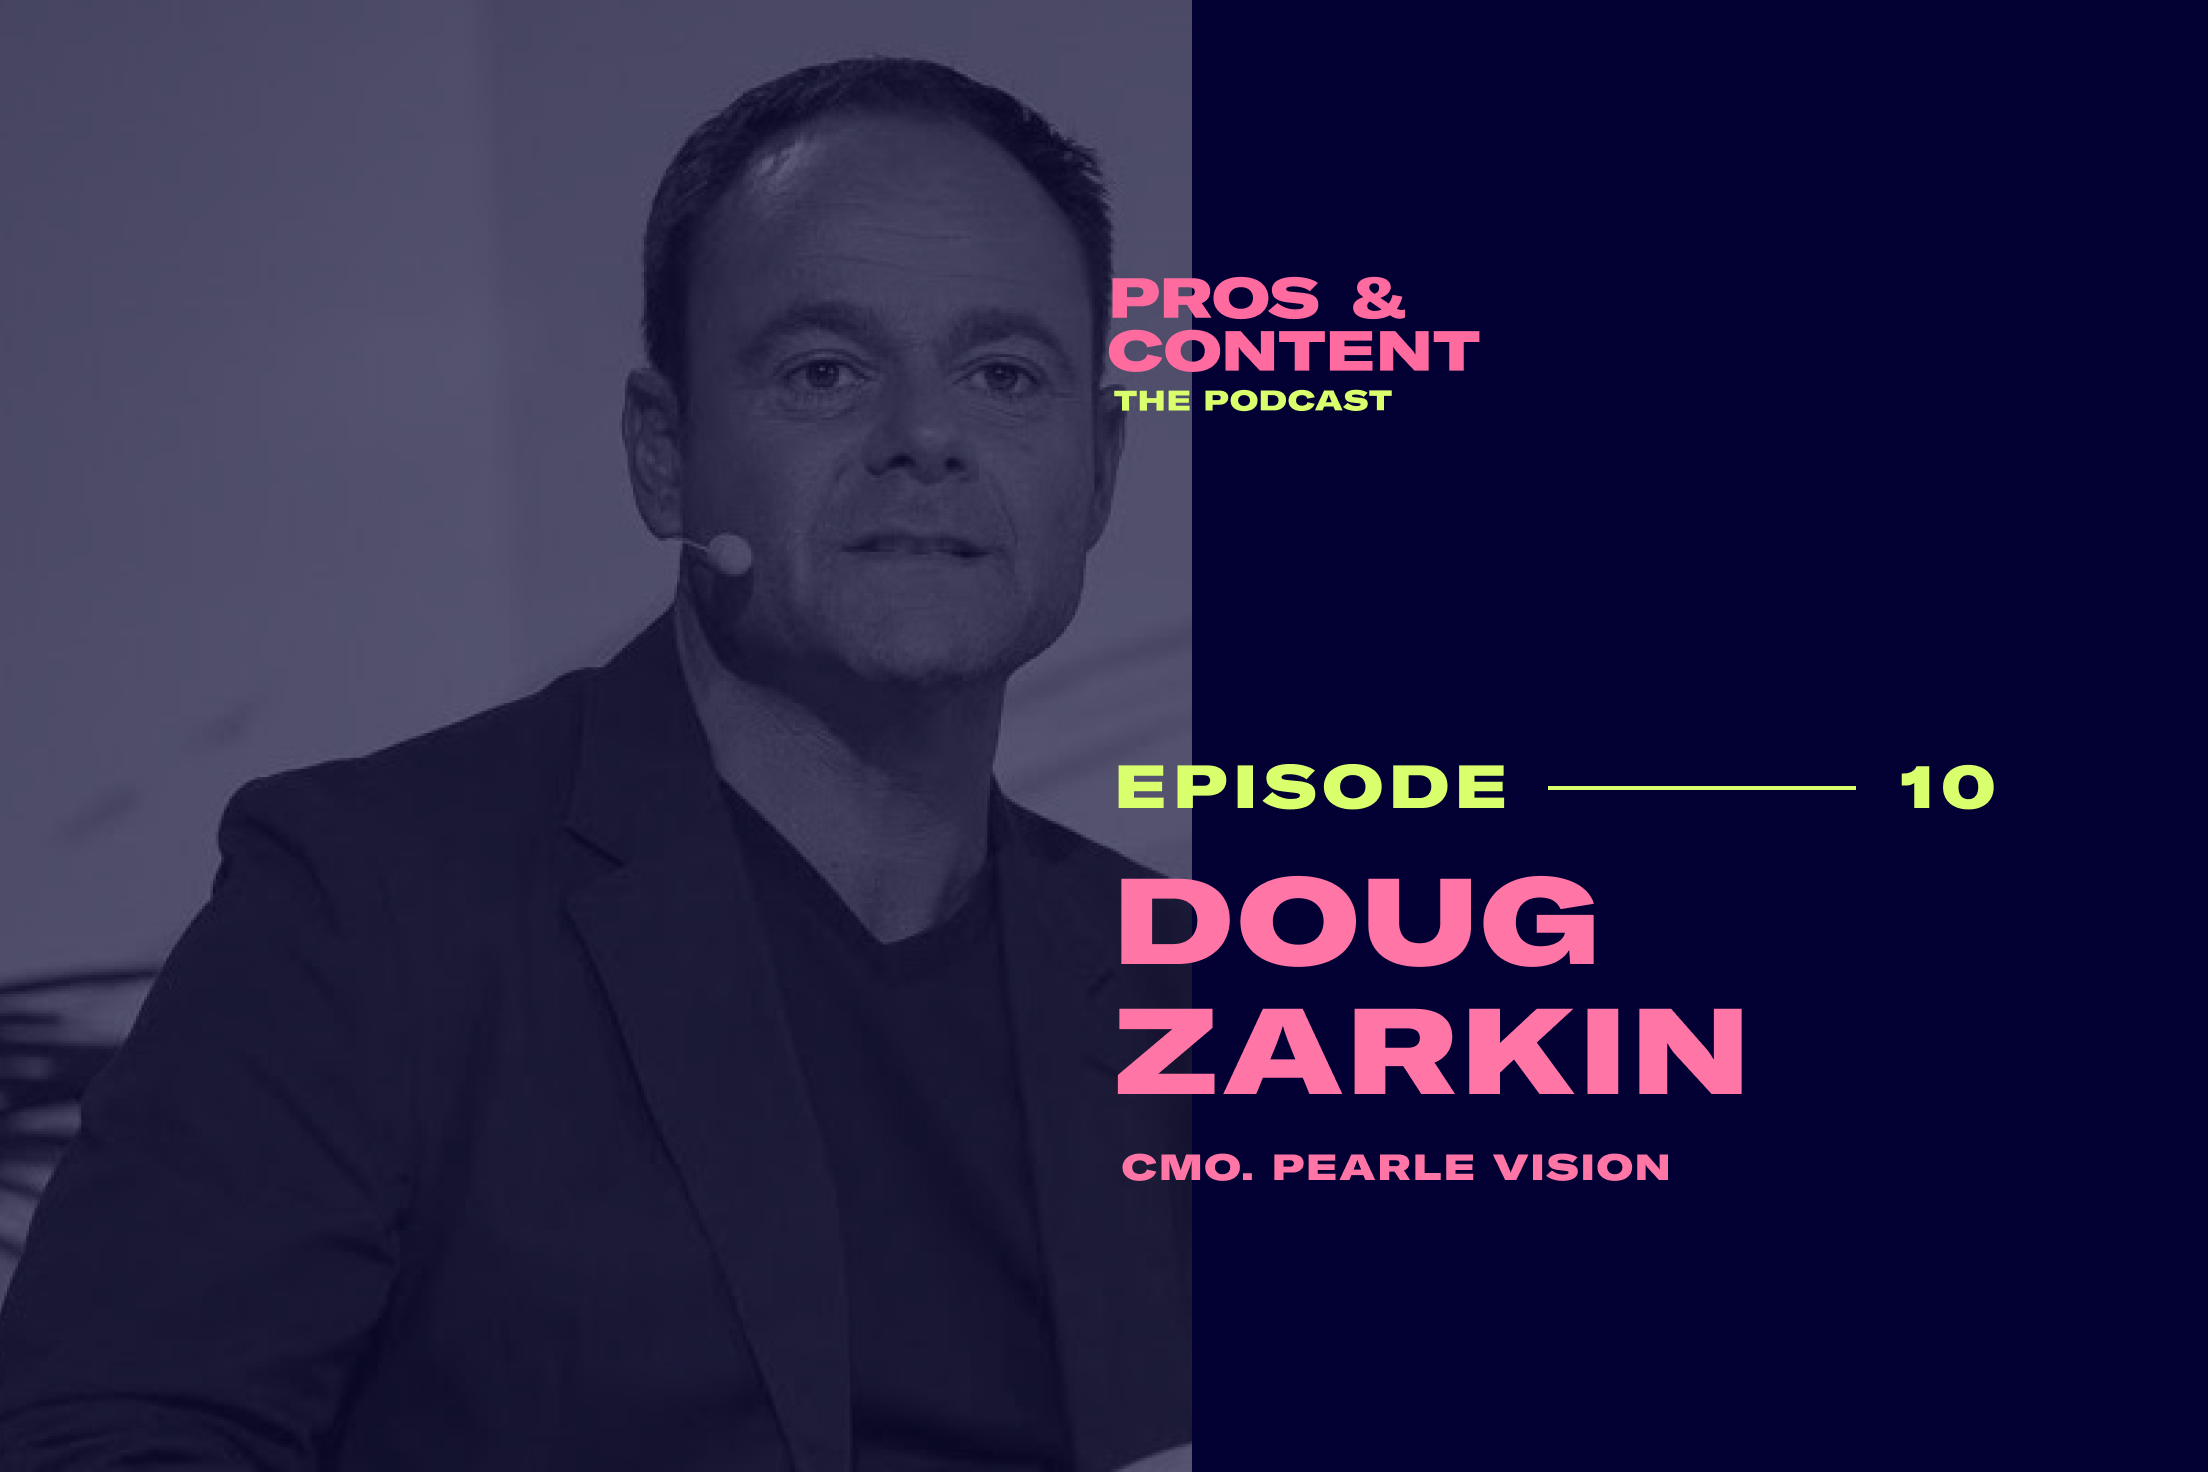 Pros & Content Podcast: Doug Zarkin (CMO of Pearle Vision)